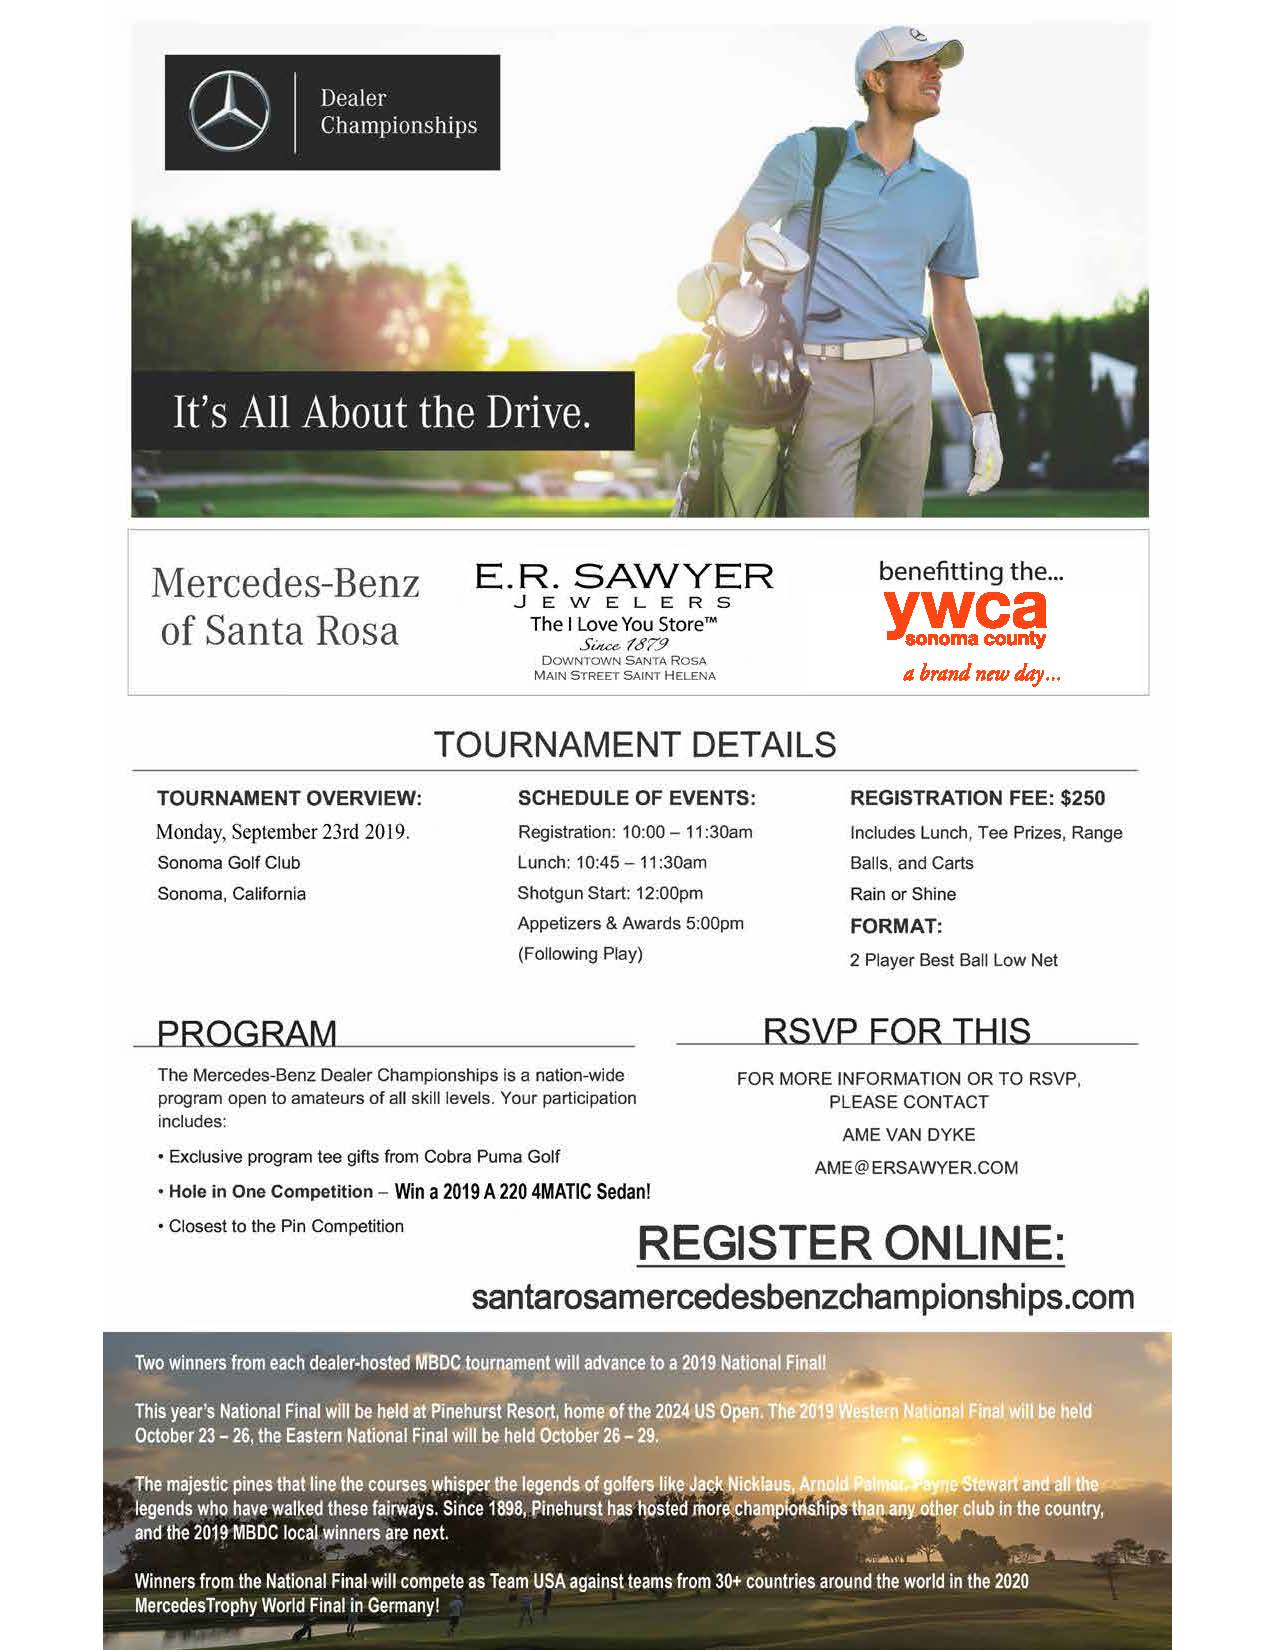 Mercedes-Benz Golf Tournament - National Qualifier @ Sonoma Golf Club